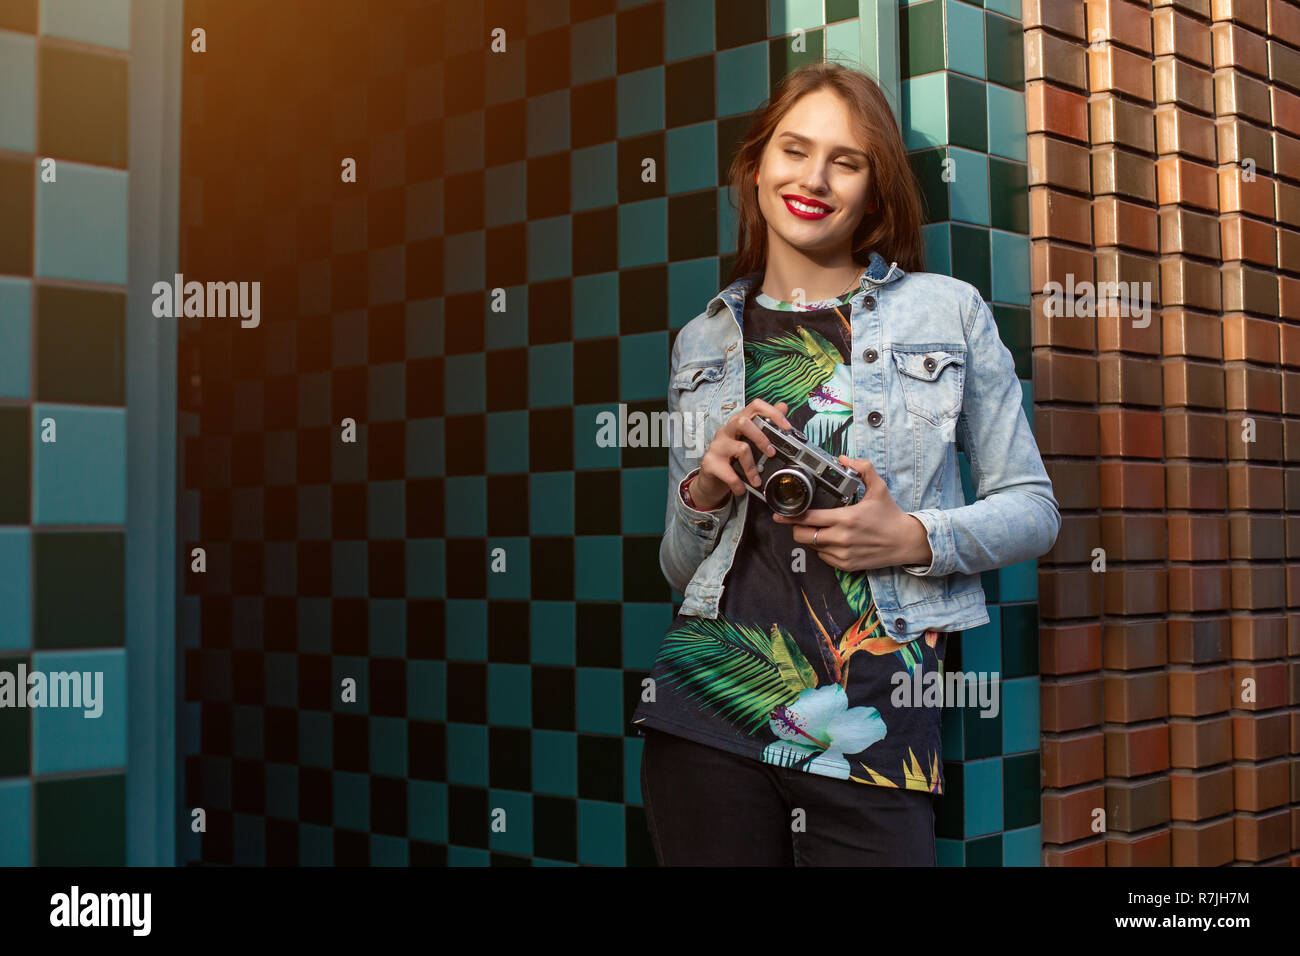 Cool funny girl model with retro film camera wearing a denim jacket, dark hair outdoors over city wall in a cage background. Sun flare Stock Photo